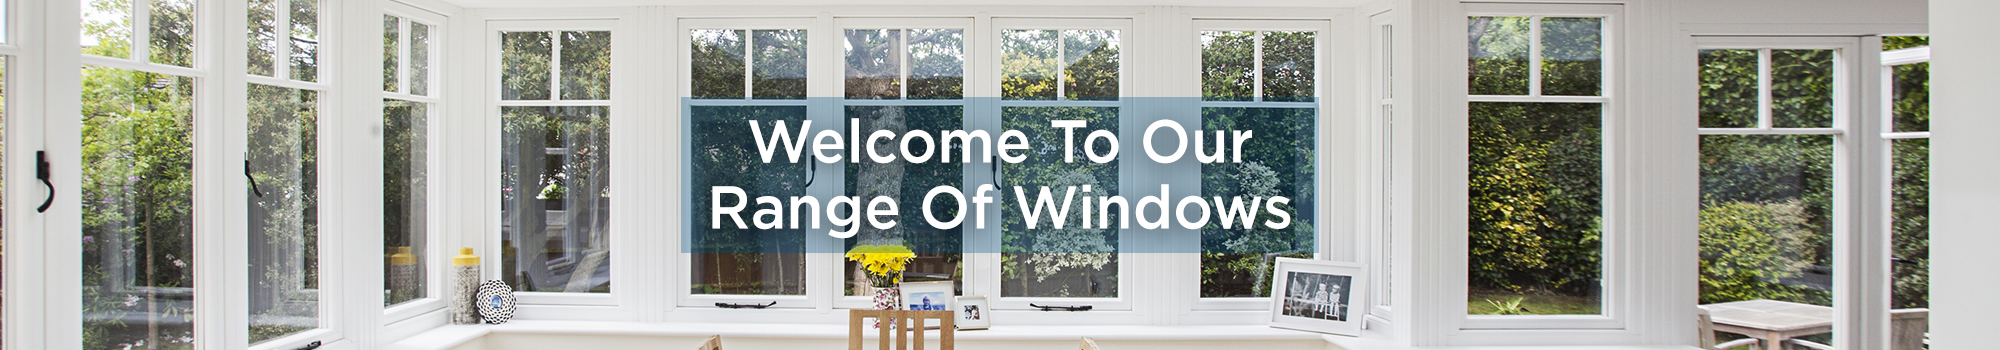 welcome-to-windows